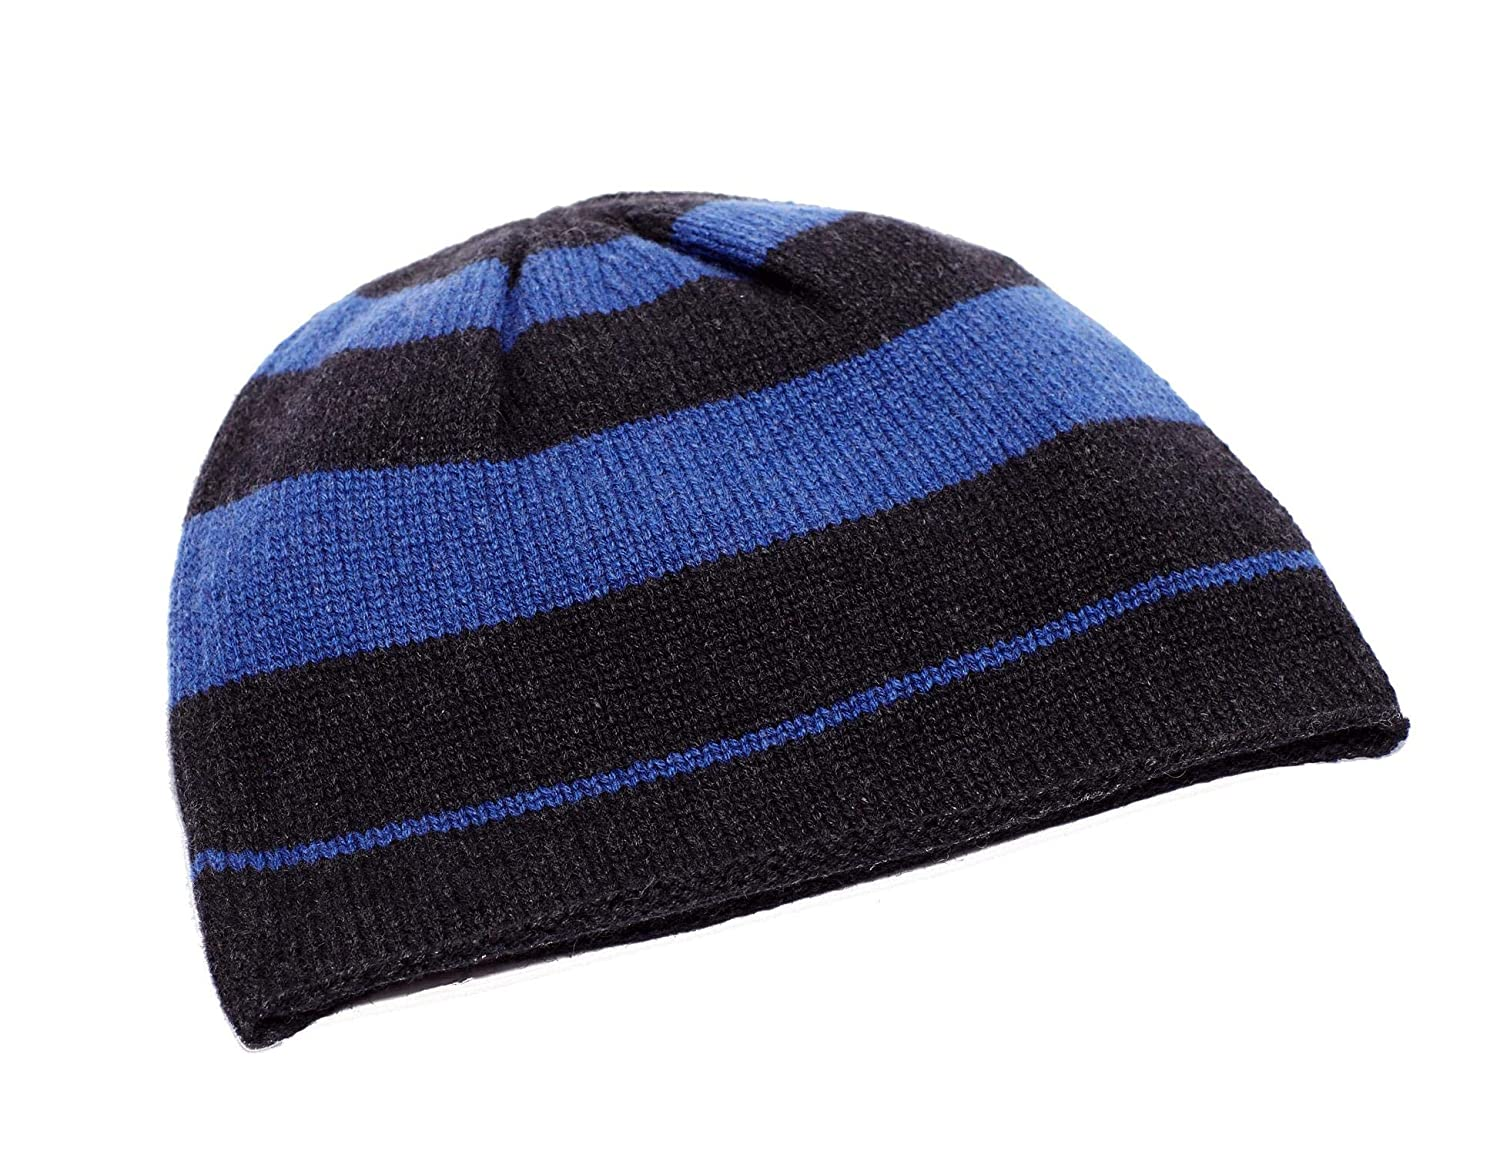 Invisible World Women s Men s 100% Cashmere Beanie Striped Knit Cap Blue at  Amazon Women s Clothing store  160ac772b66